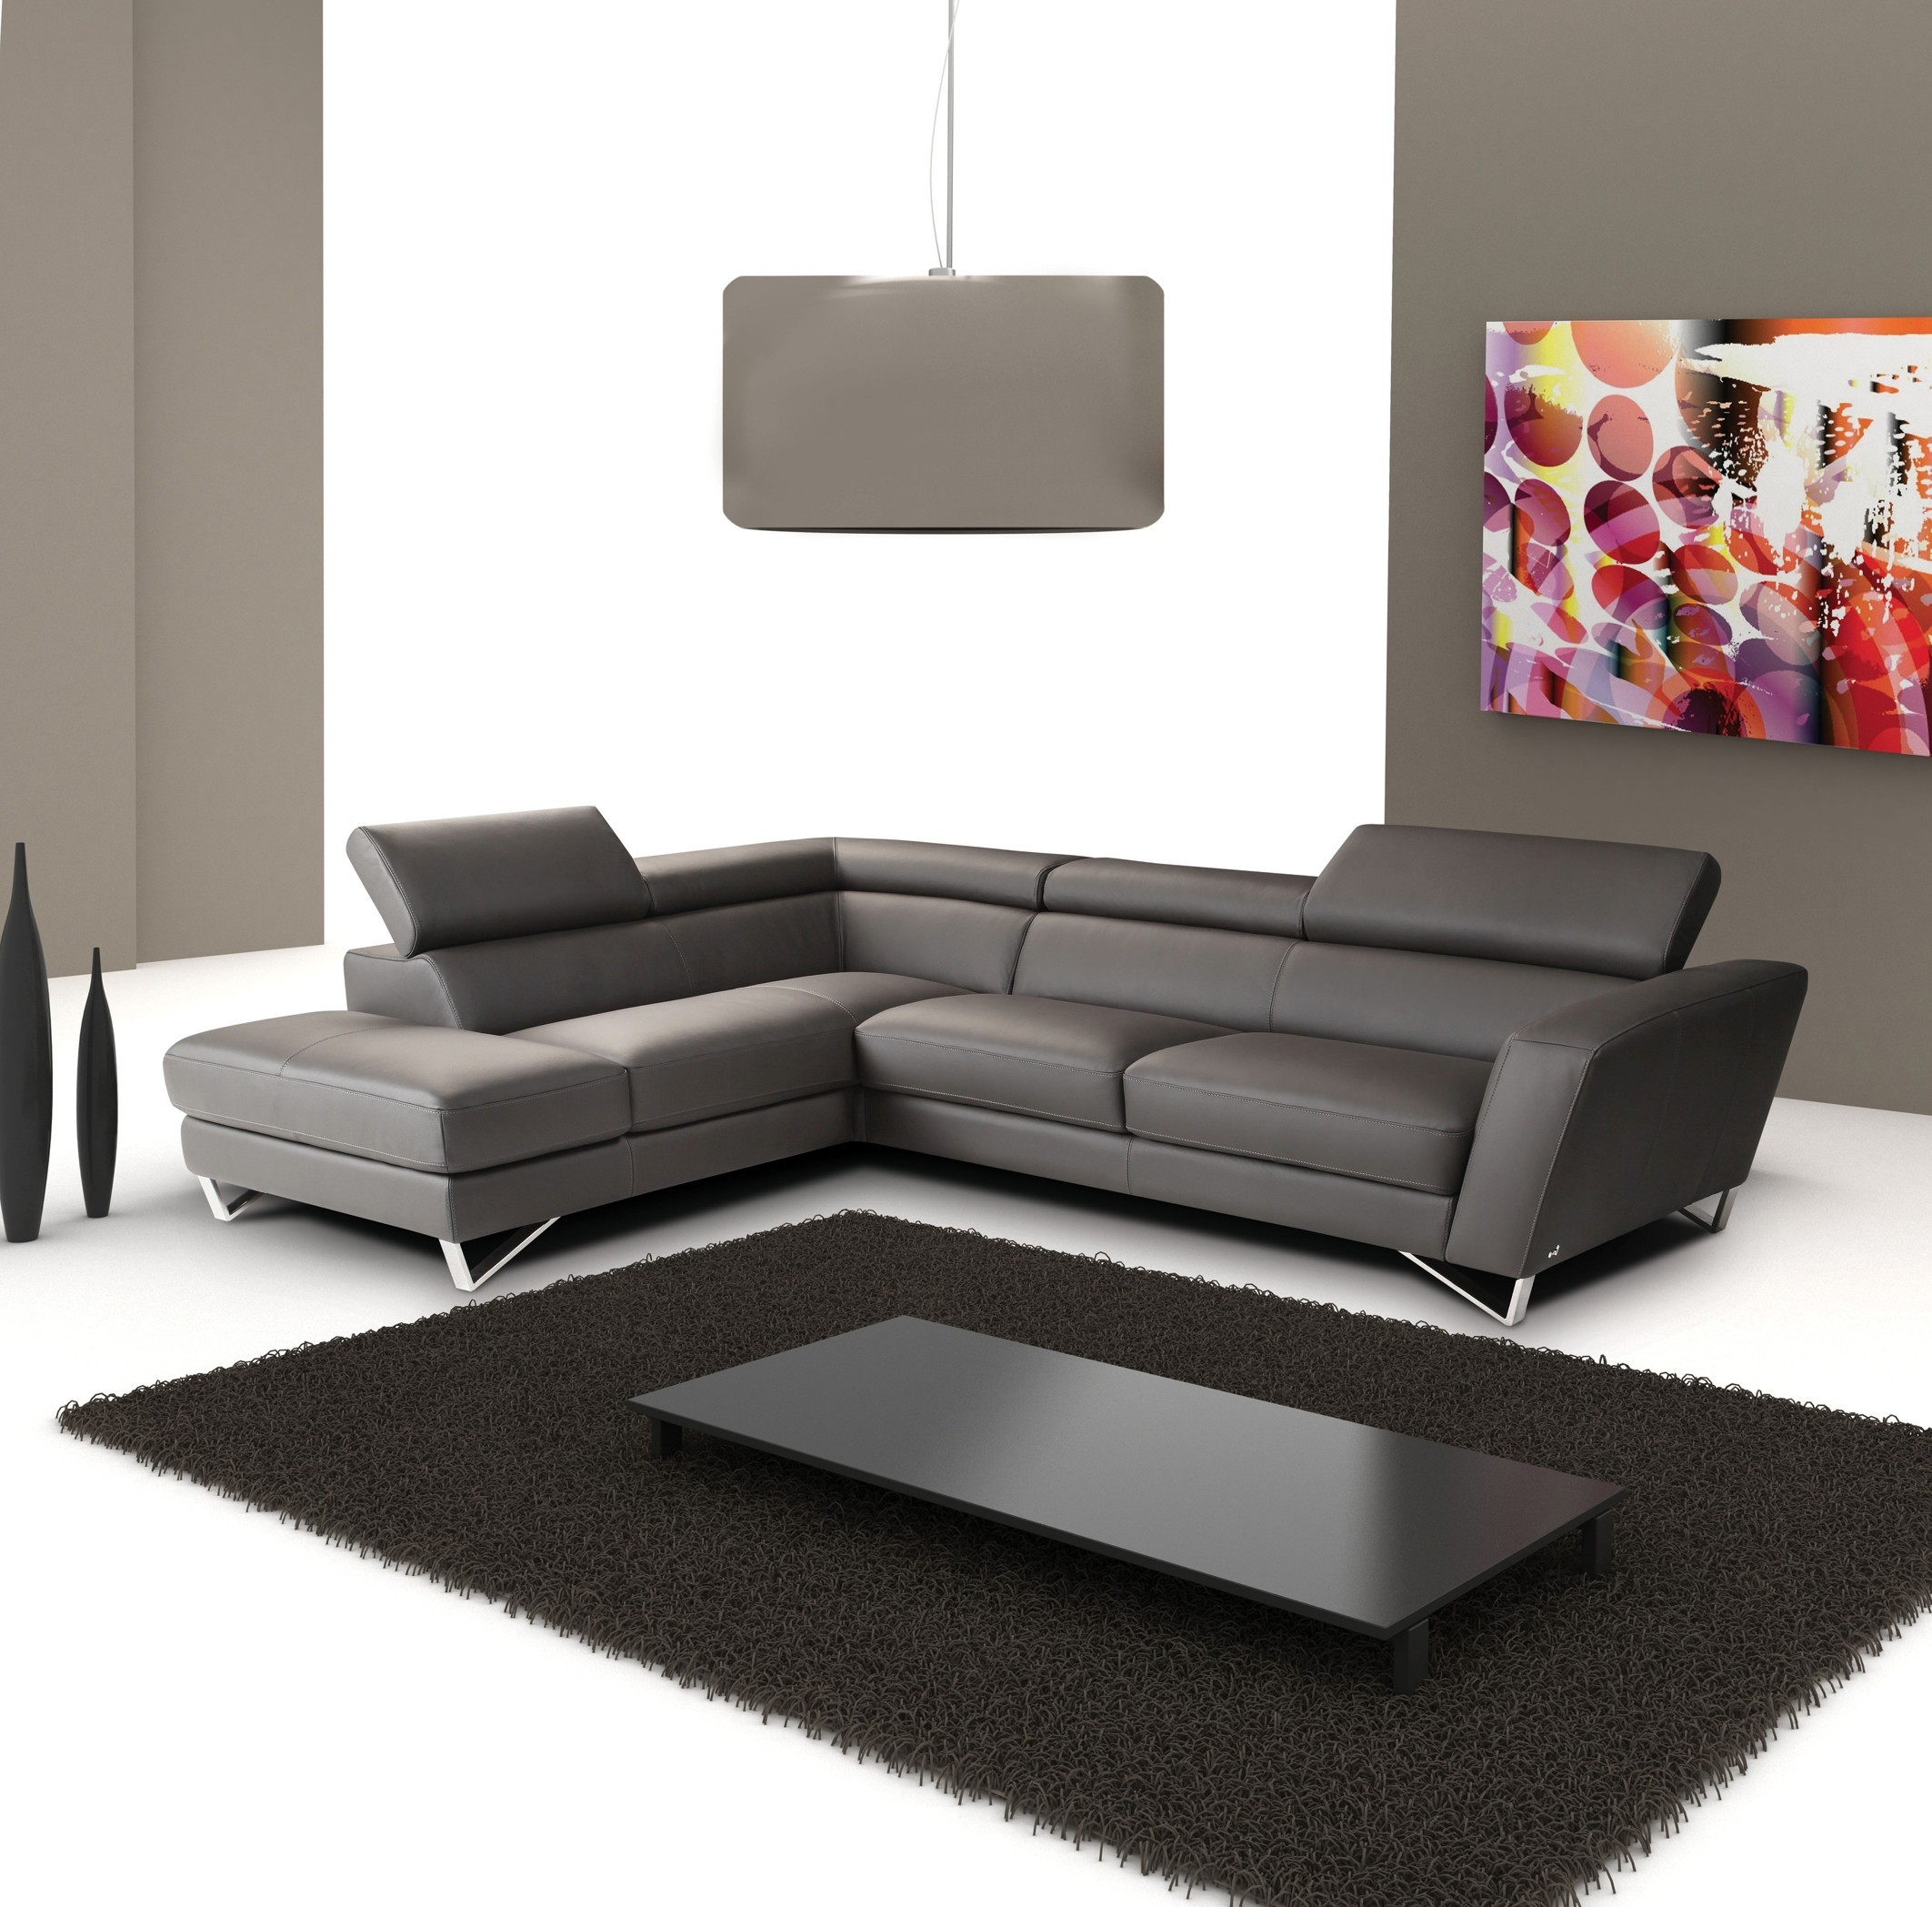 Contemporary sofa Sectionals Best Cool Contemporary Sectional sofas Best Contemporary Sectional Collection